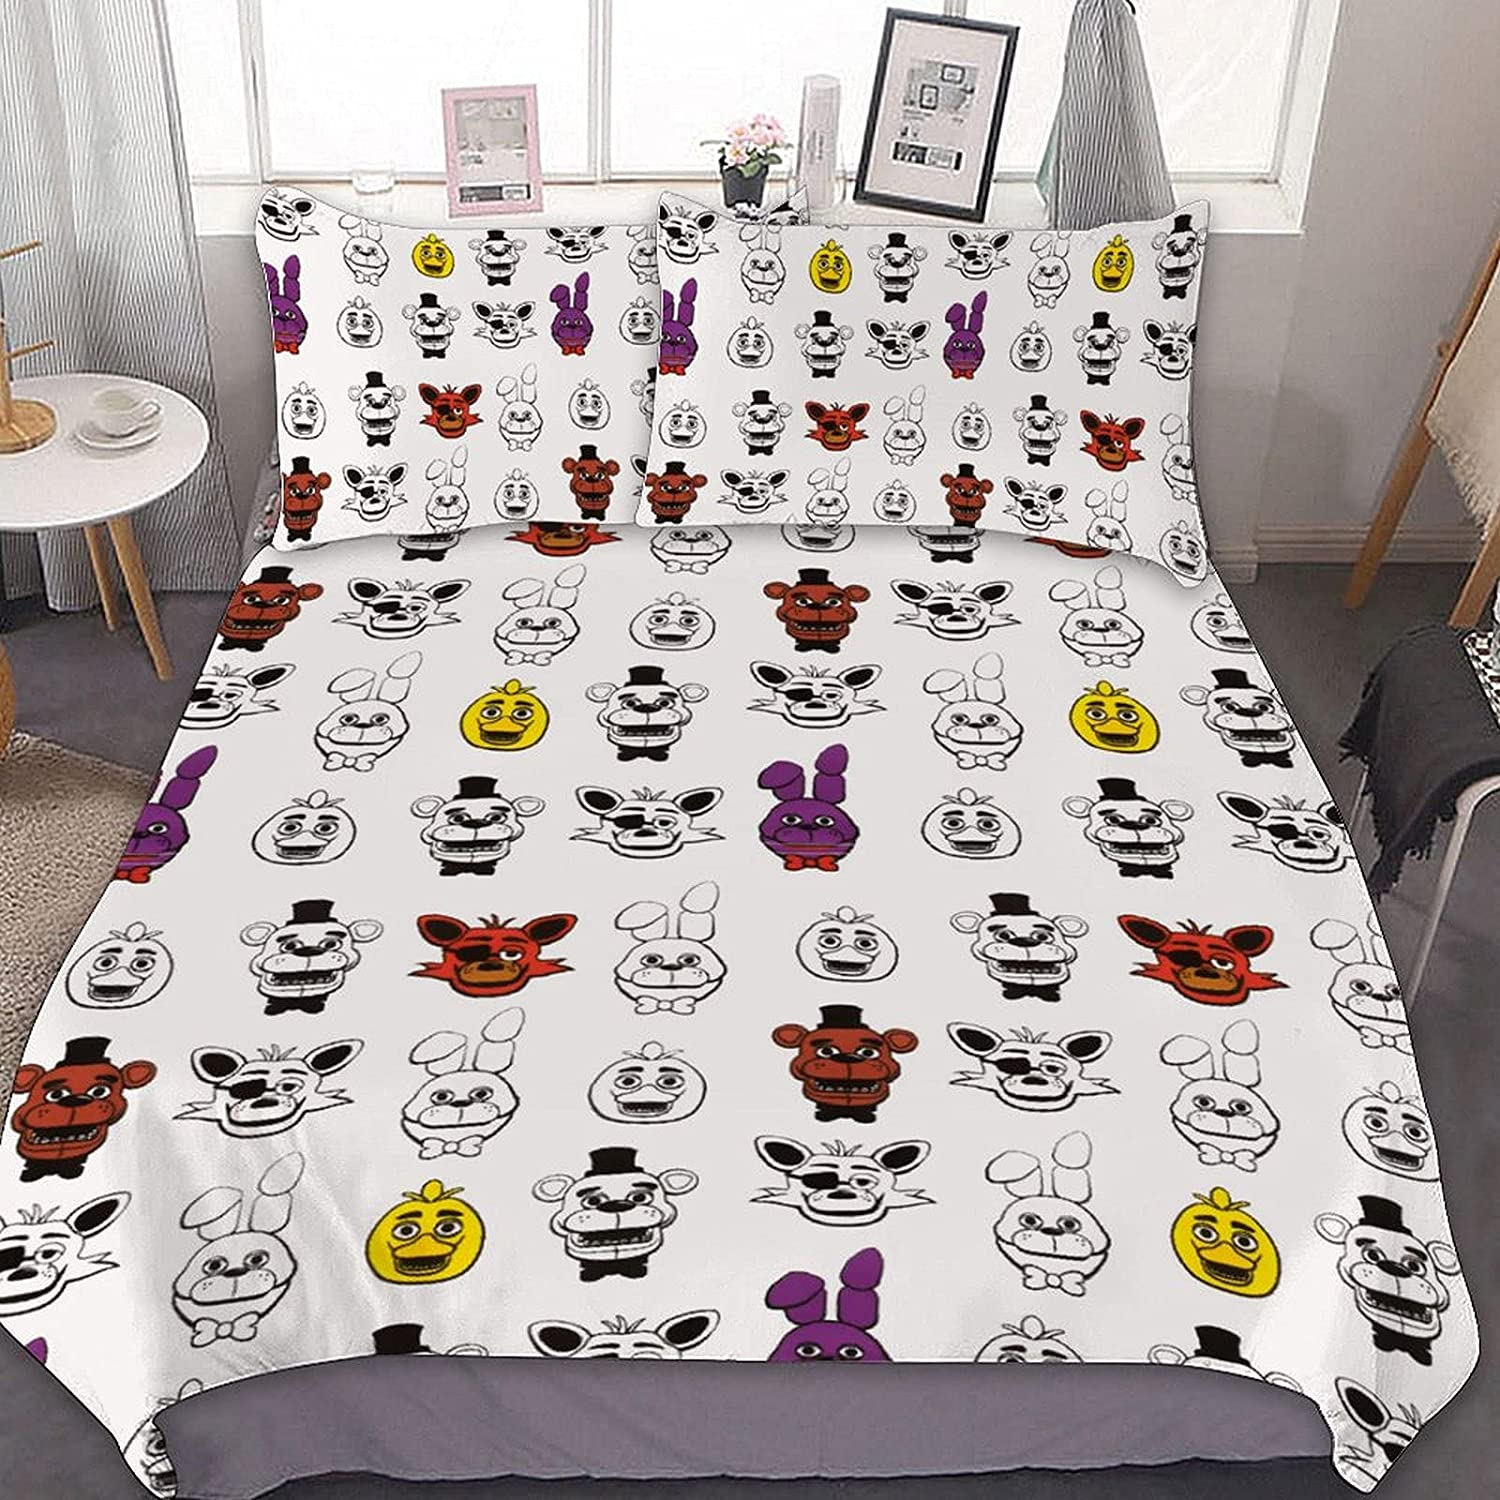 Funny FNAF Quilt Sets for Fees free!! Men Soft Las Vegas Mall Zipper Bedding setsWith Women